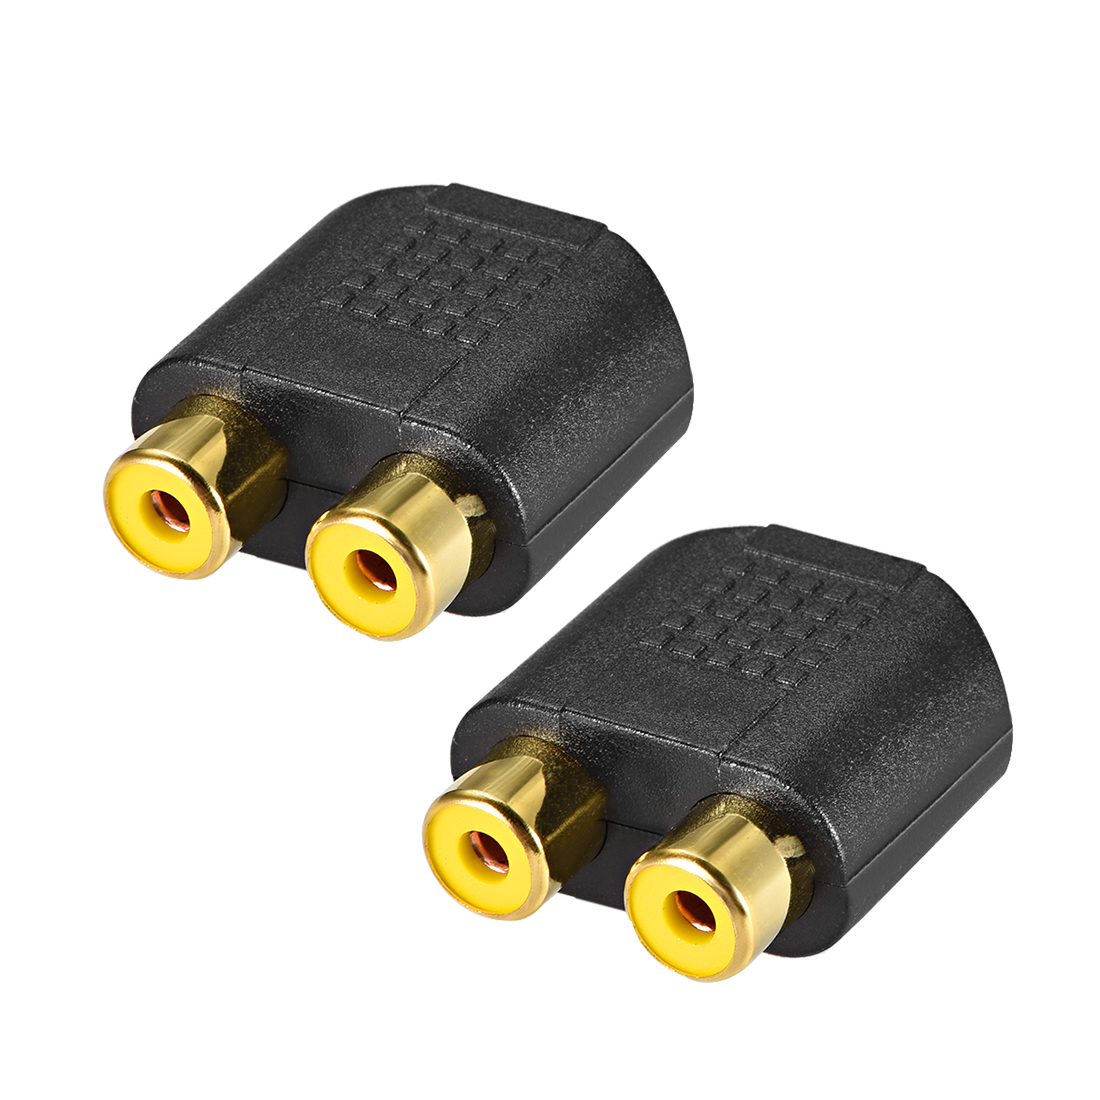 3.5mm Female to 2-RCA Female Stereo Connector Splitter oupler Black 2Pcs